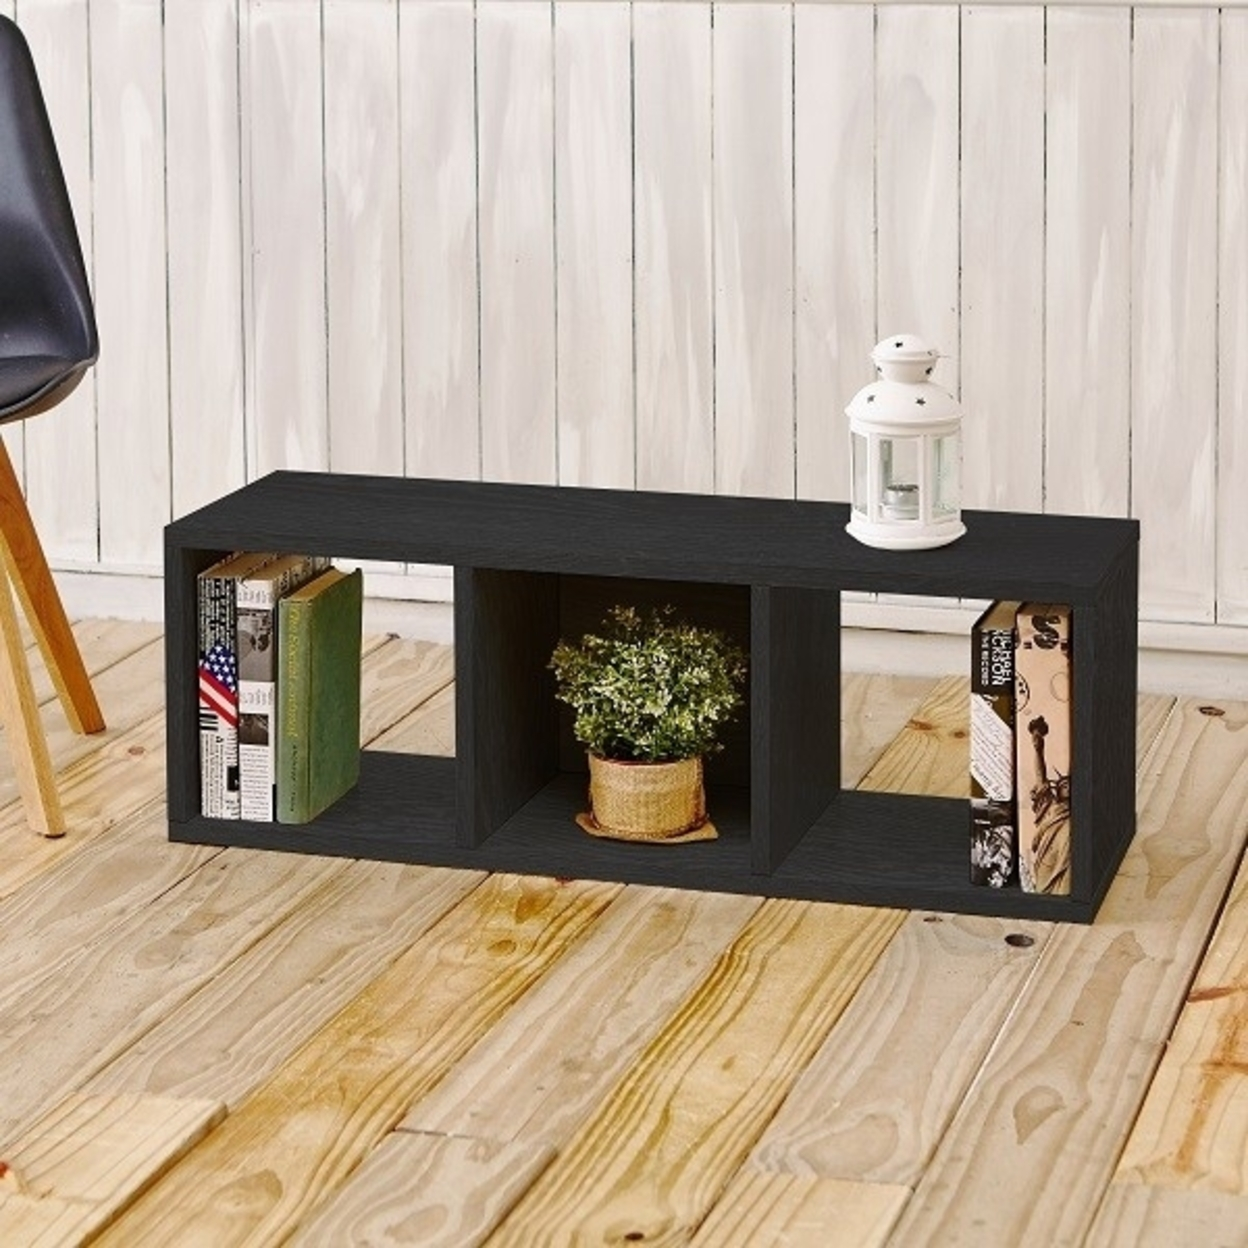 3 Cubby Stackable Storage Bench Espresso Wood Grain Tool Free Assembly Lifetime Warranty